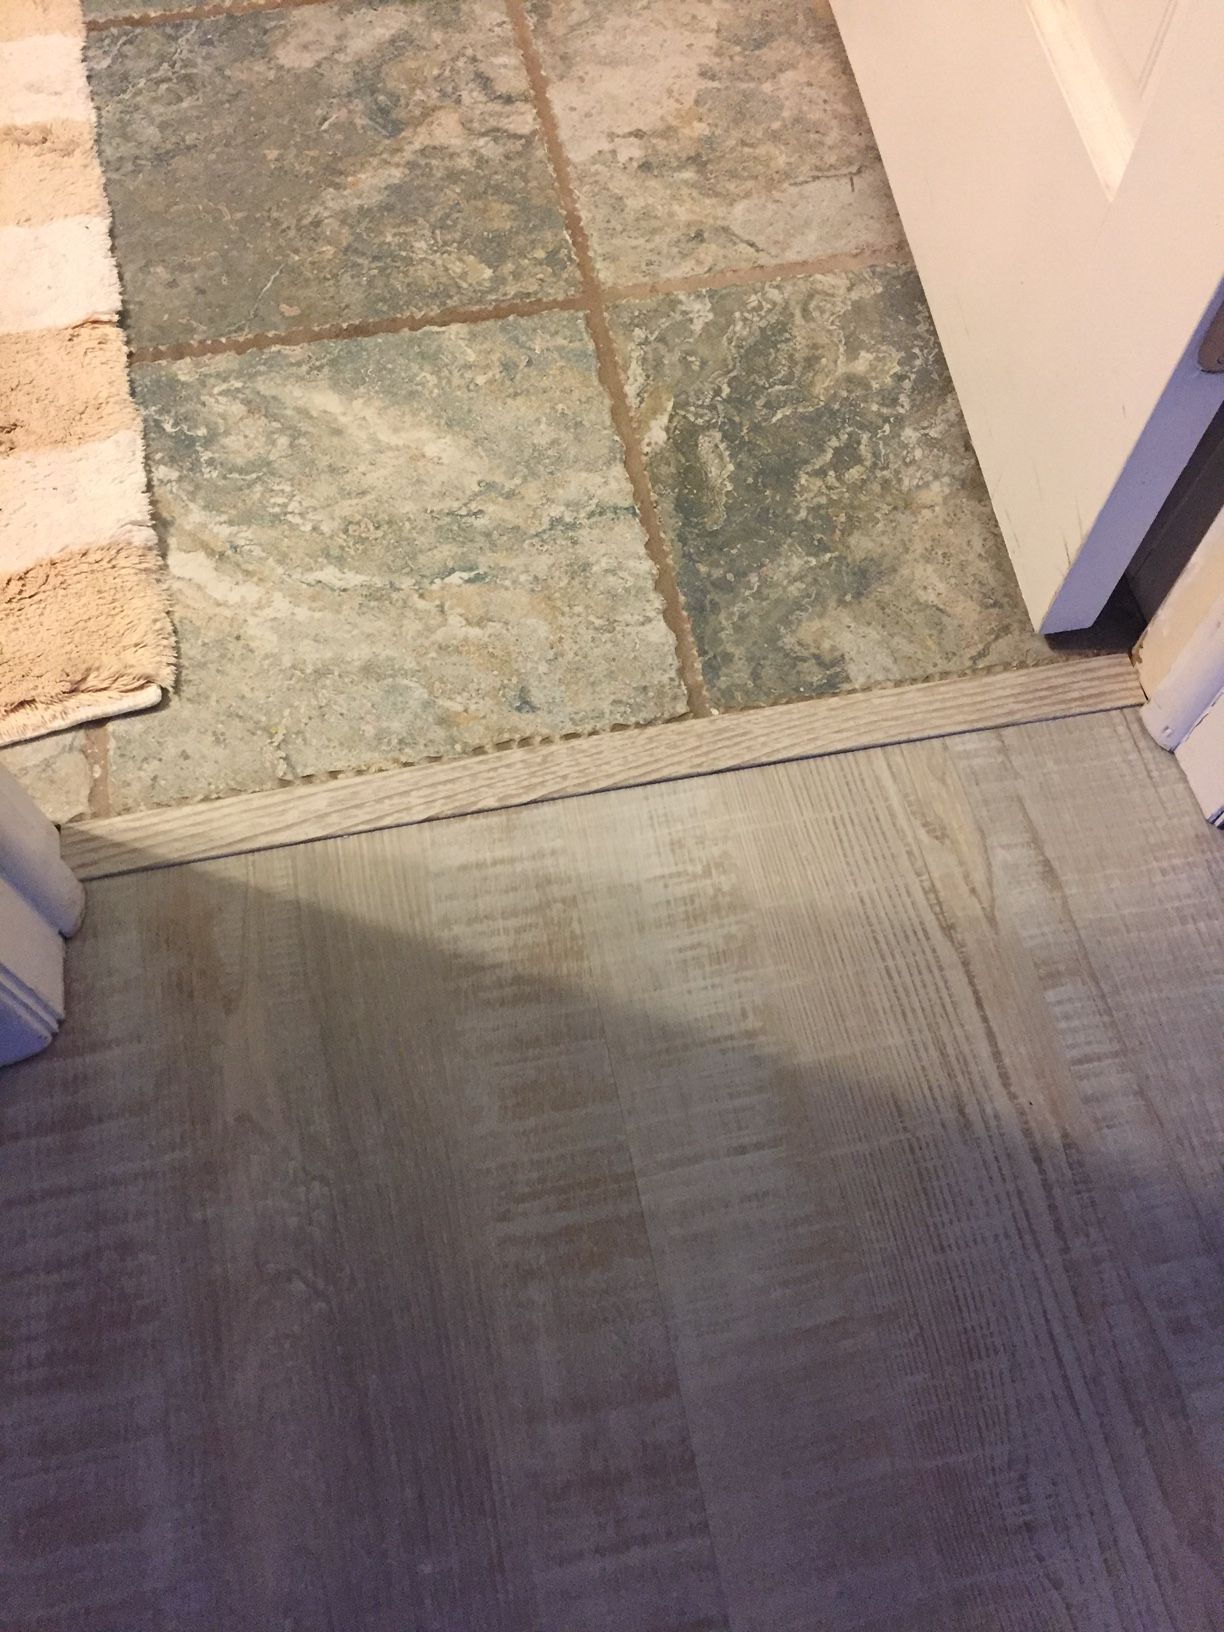 where lvt meets ceramic edging used was a baby threshold  top  - edging used was a baby threshold